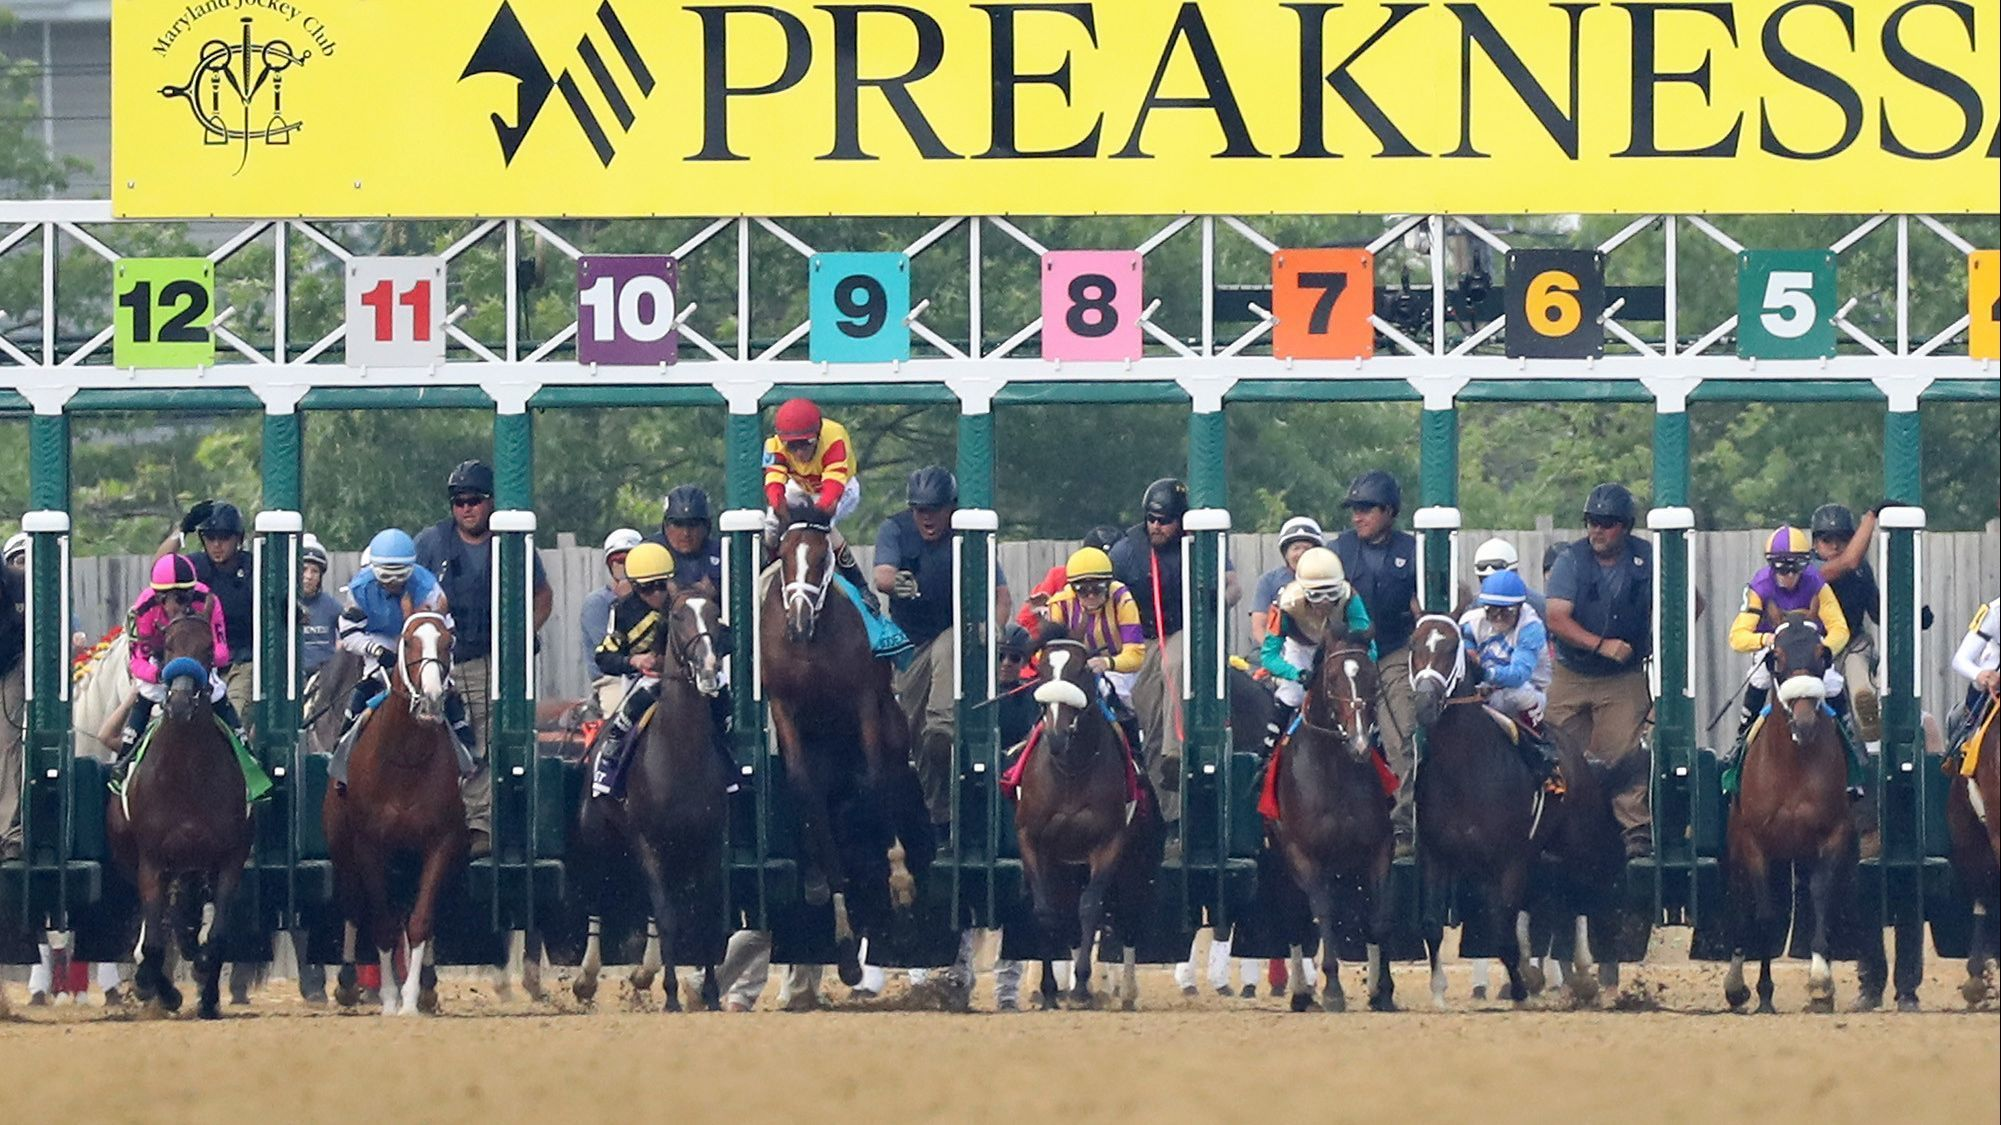 Preakness TV audience down about 10 percent year to year in Baltimore — and twice that nationally